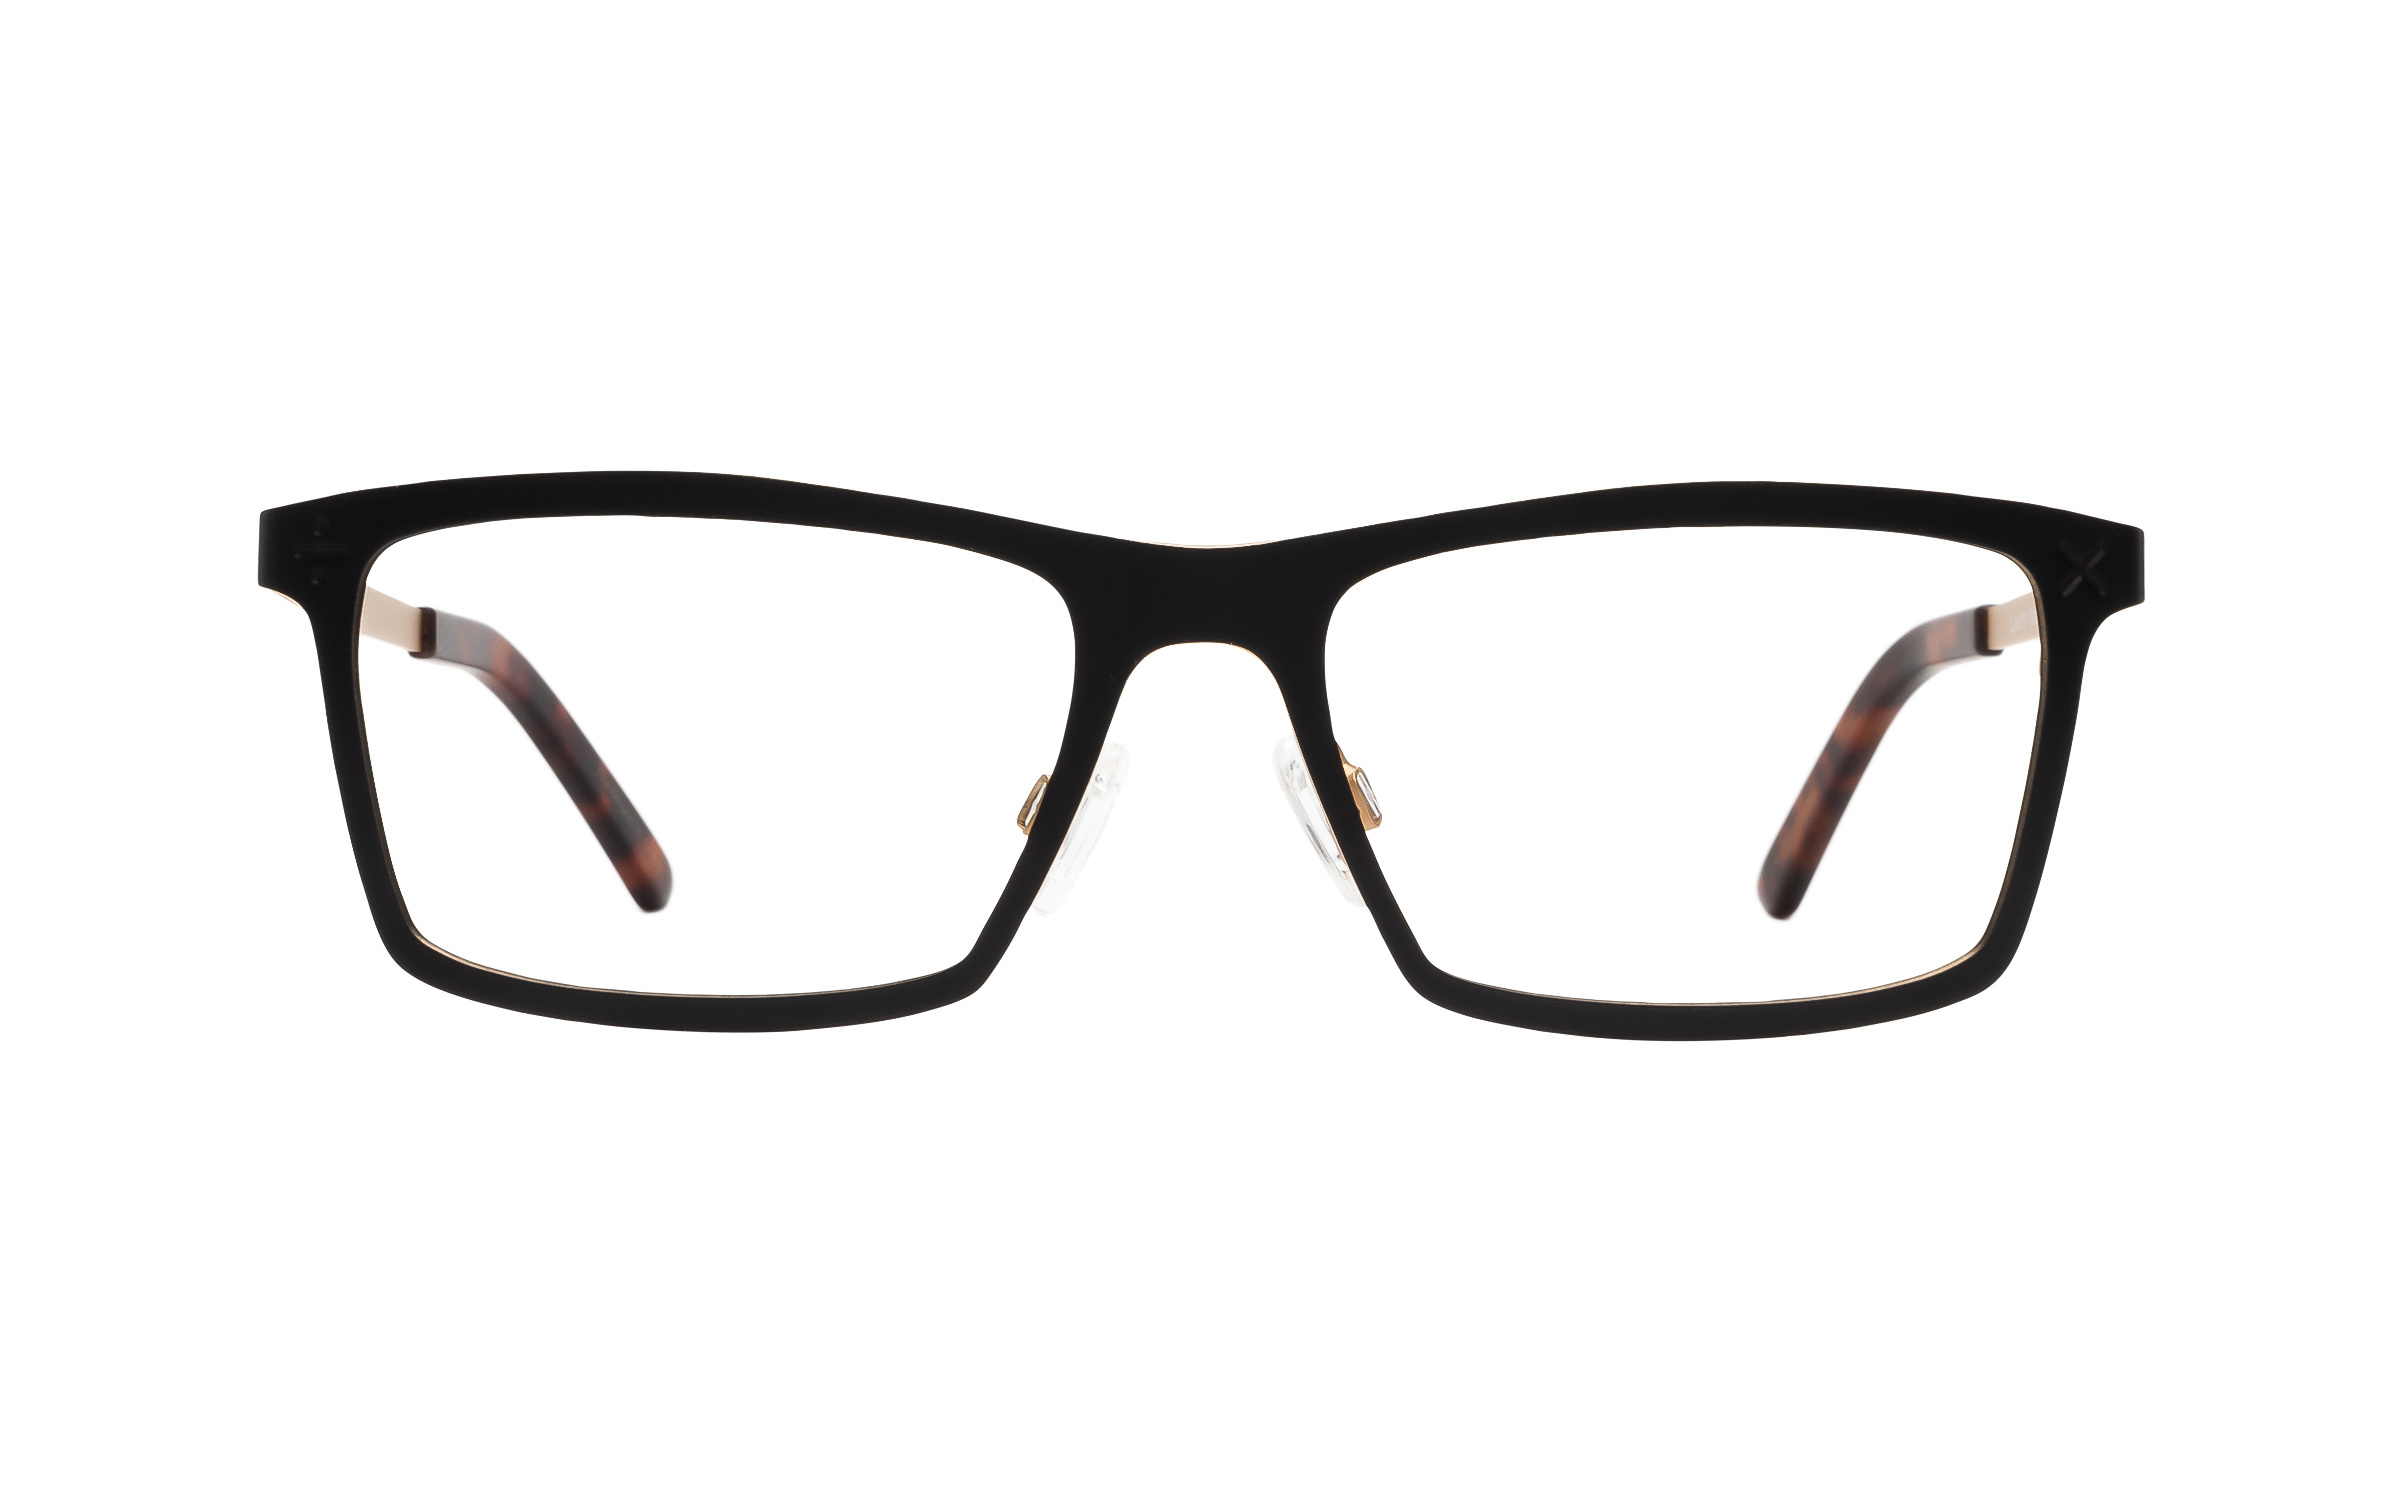 Koali glasses - buy online in Canada with free shipping & returns ...